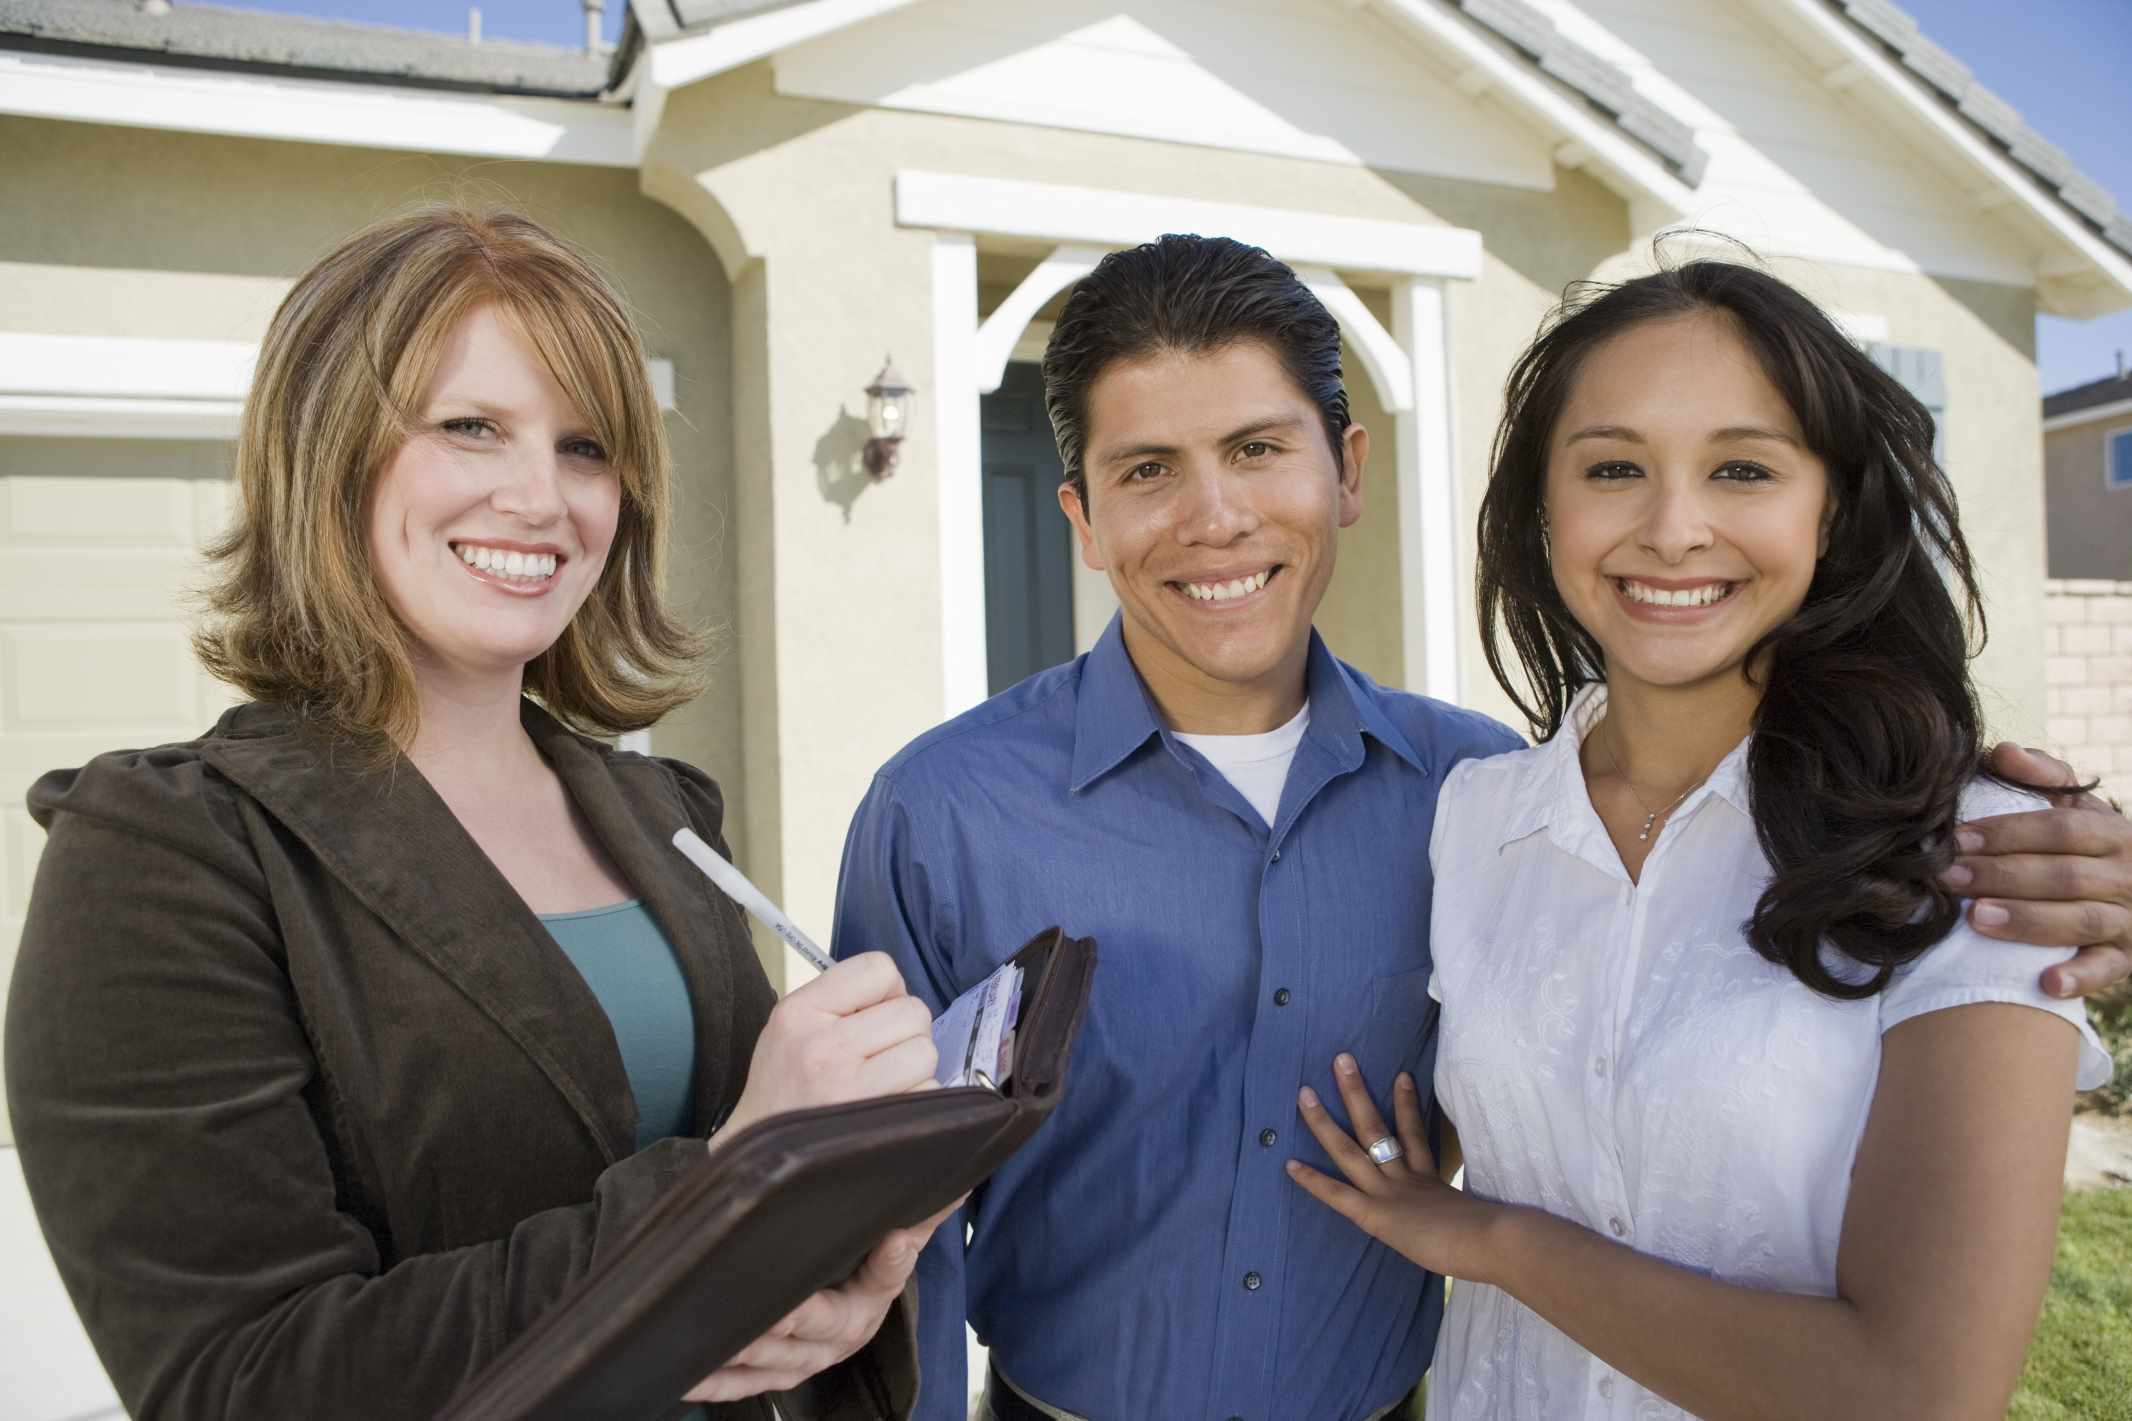 Be an informed house buyer and learn for yourself where you stand financially.